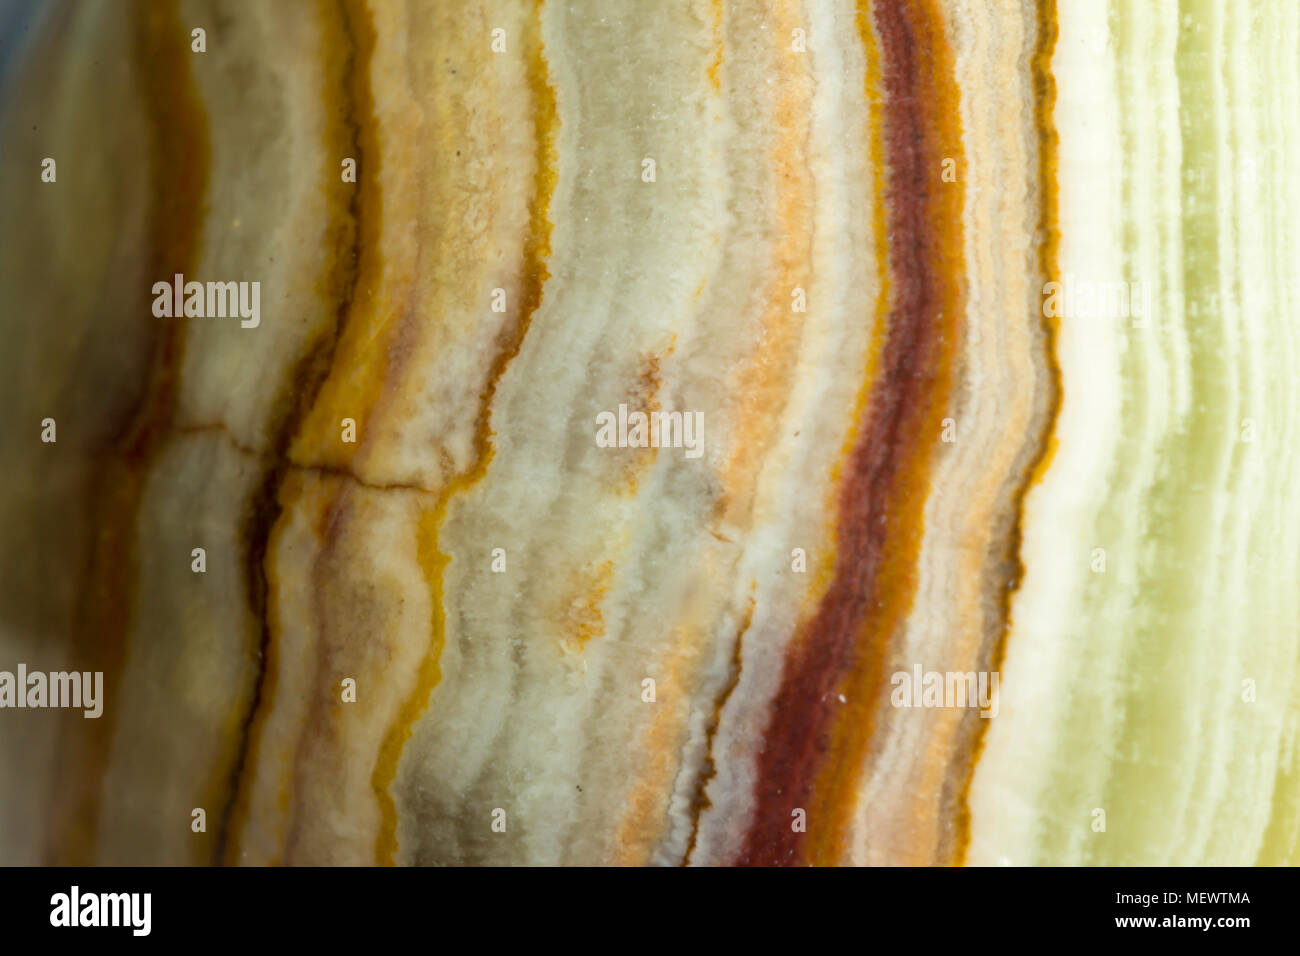 Macro photo texture of polished onyx stone. Photo for the site about geology, stones, jewelry, handwork, textures, art. - Stock Image